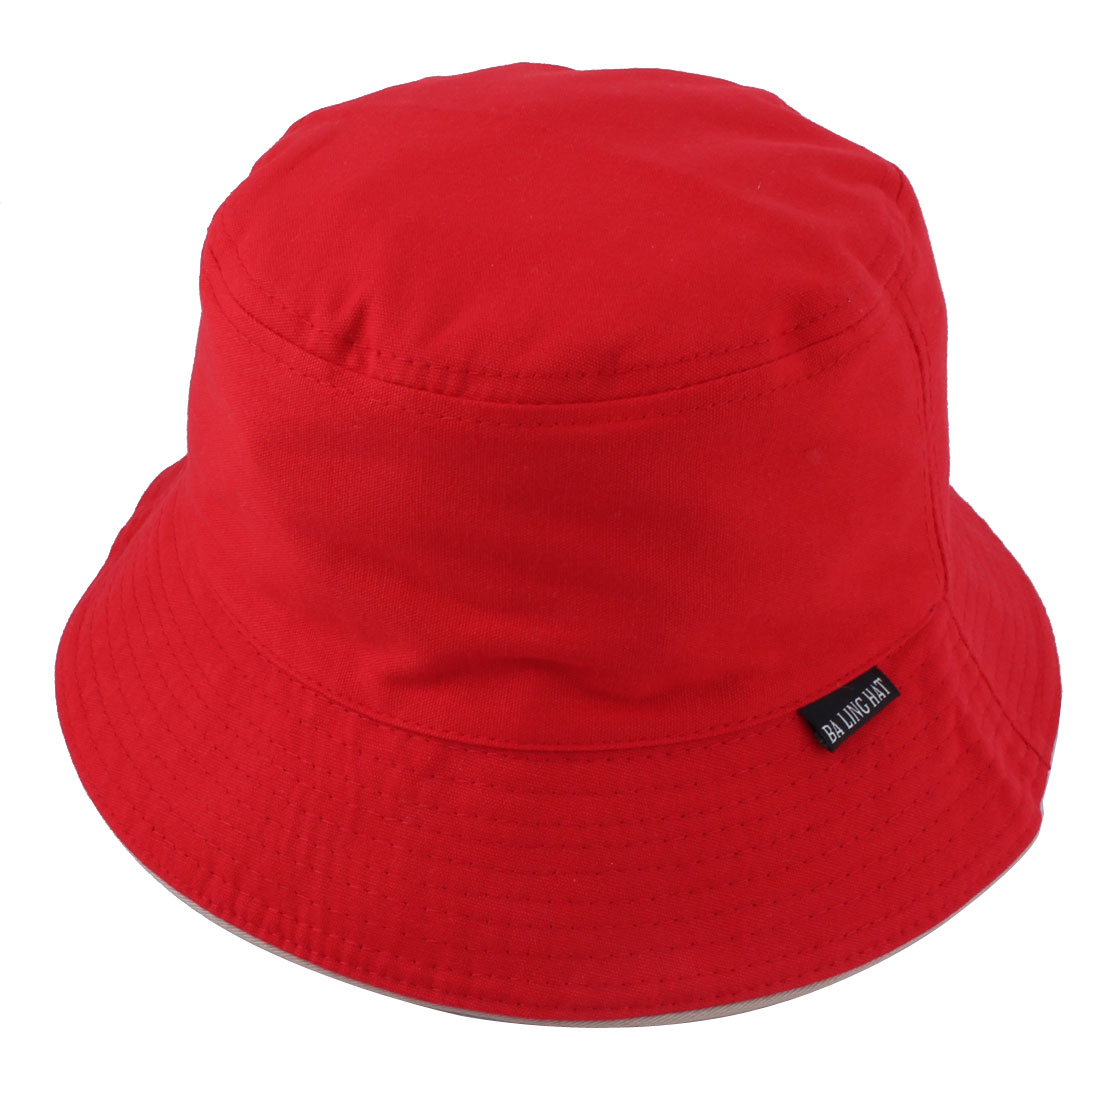 Fisherman Woman Outdoor Fishing Hiking Holiday Climbing Hunting Summer Sun Protective Cap Bucket Hat Red